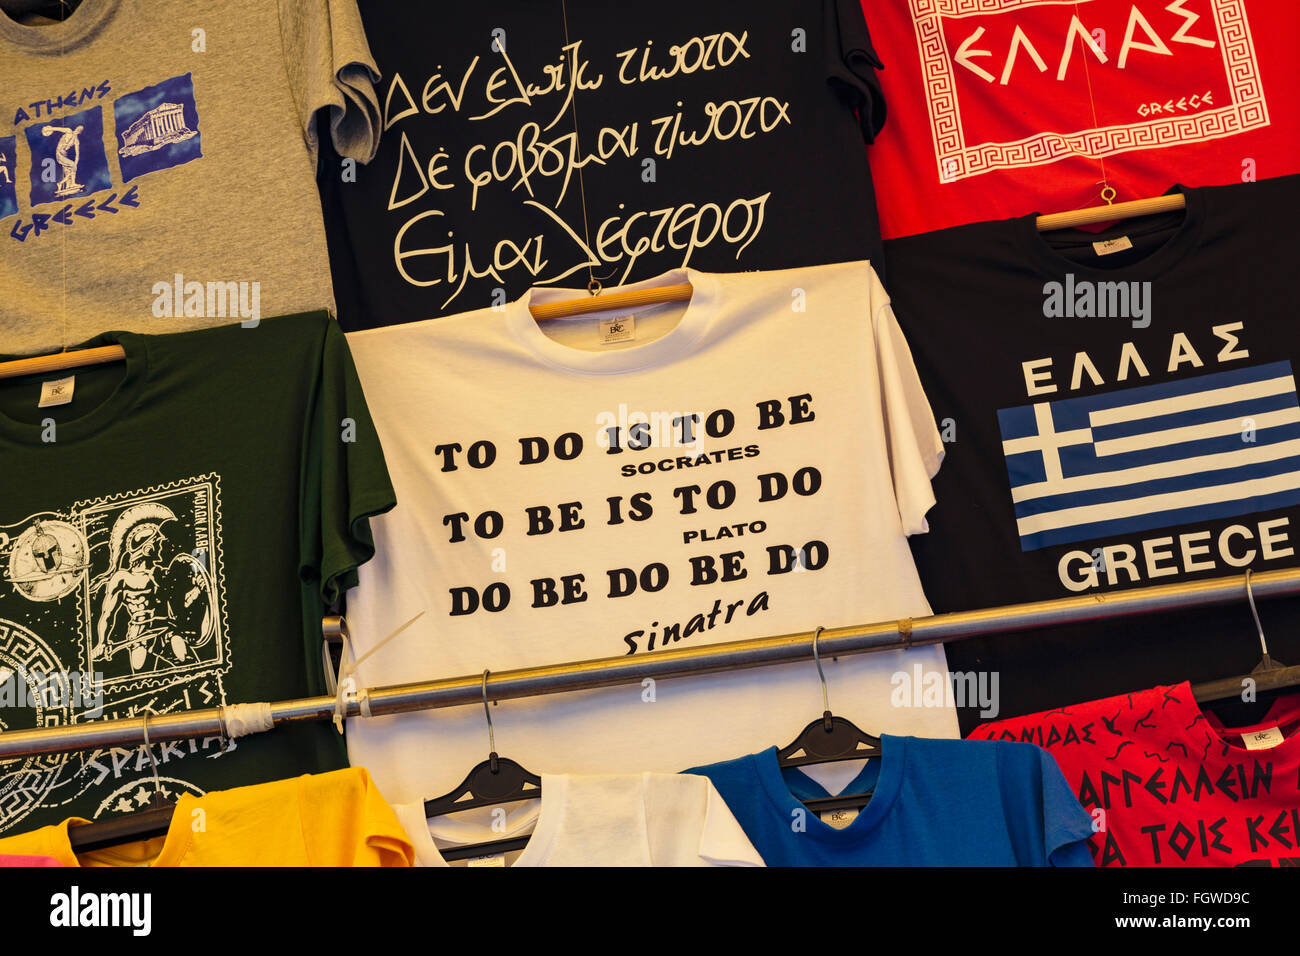 Greece.  T-shirts with amusing slogans for sale. - Stock Image